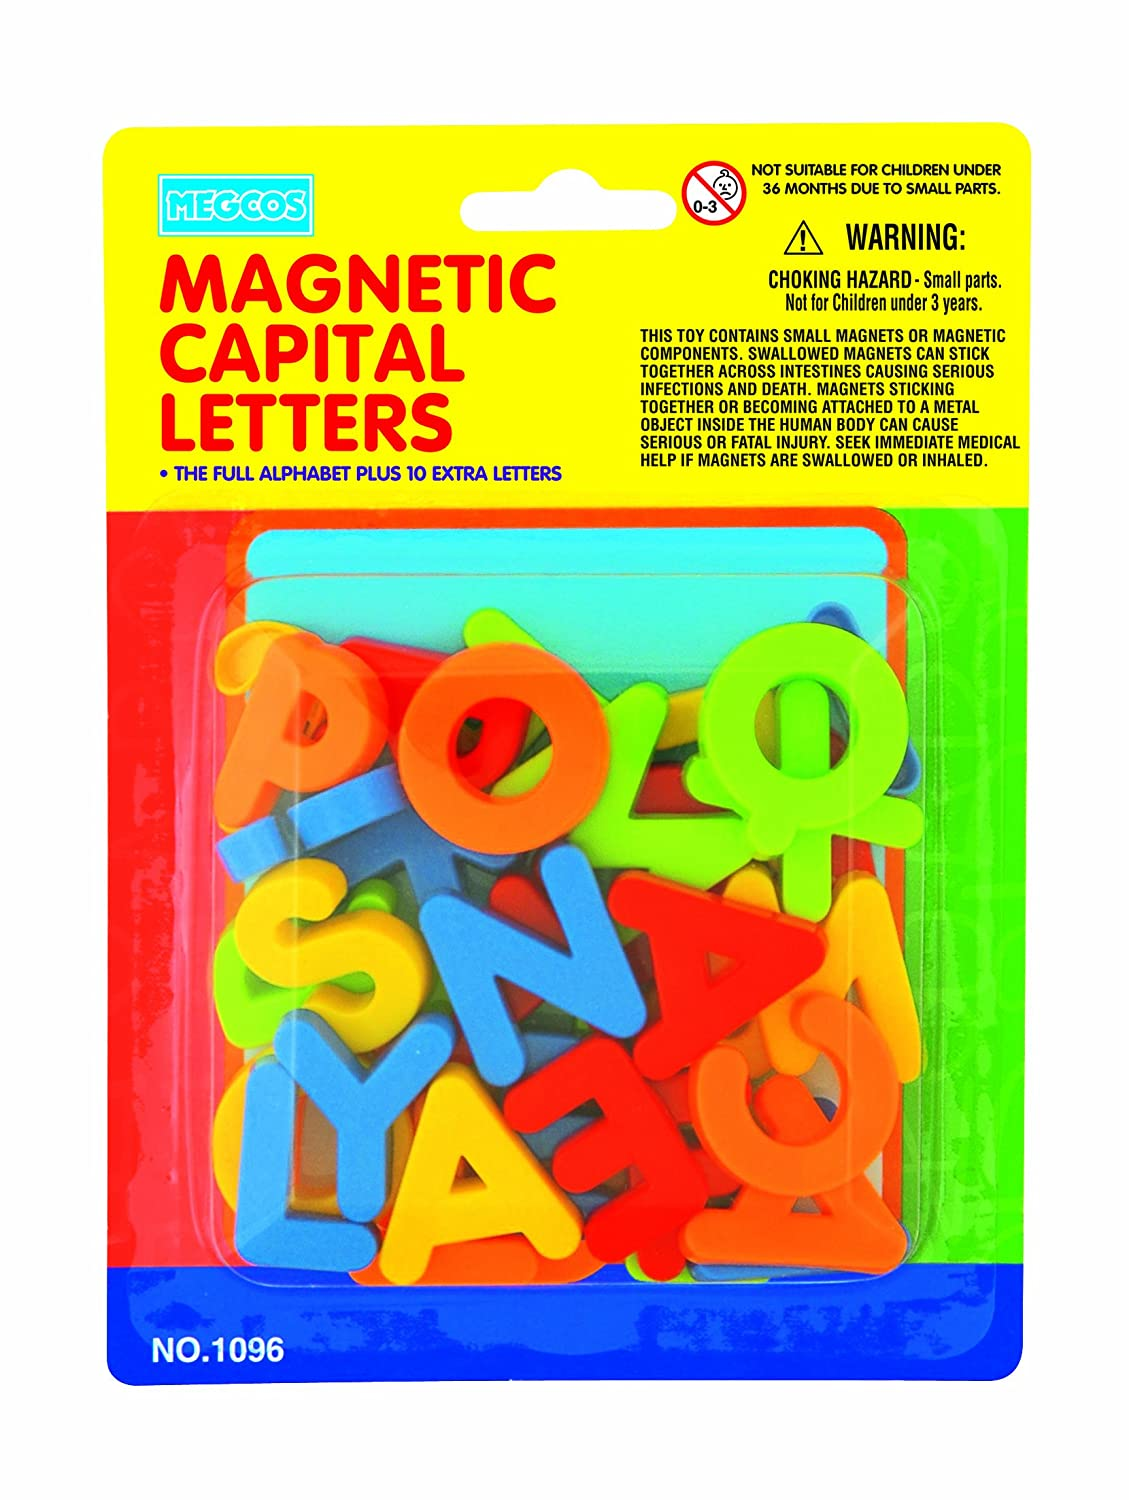 Design Alphabet Magnets amazon com megcos magnetic capital letters in a blister card 36 piece toys games